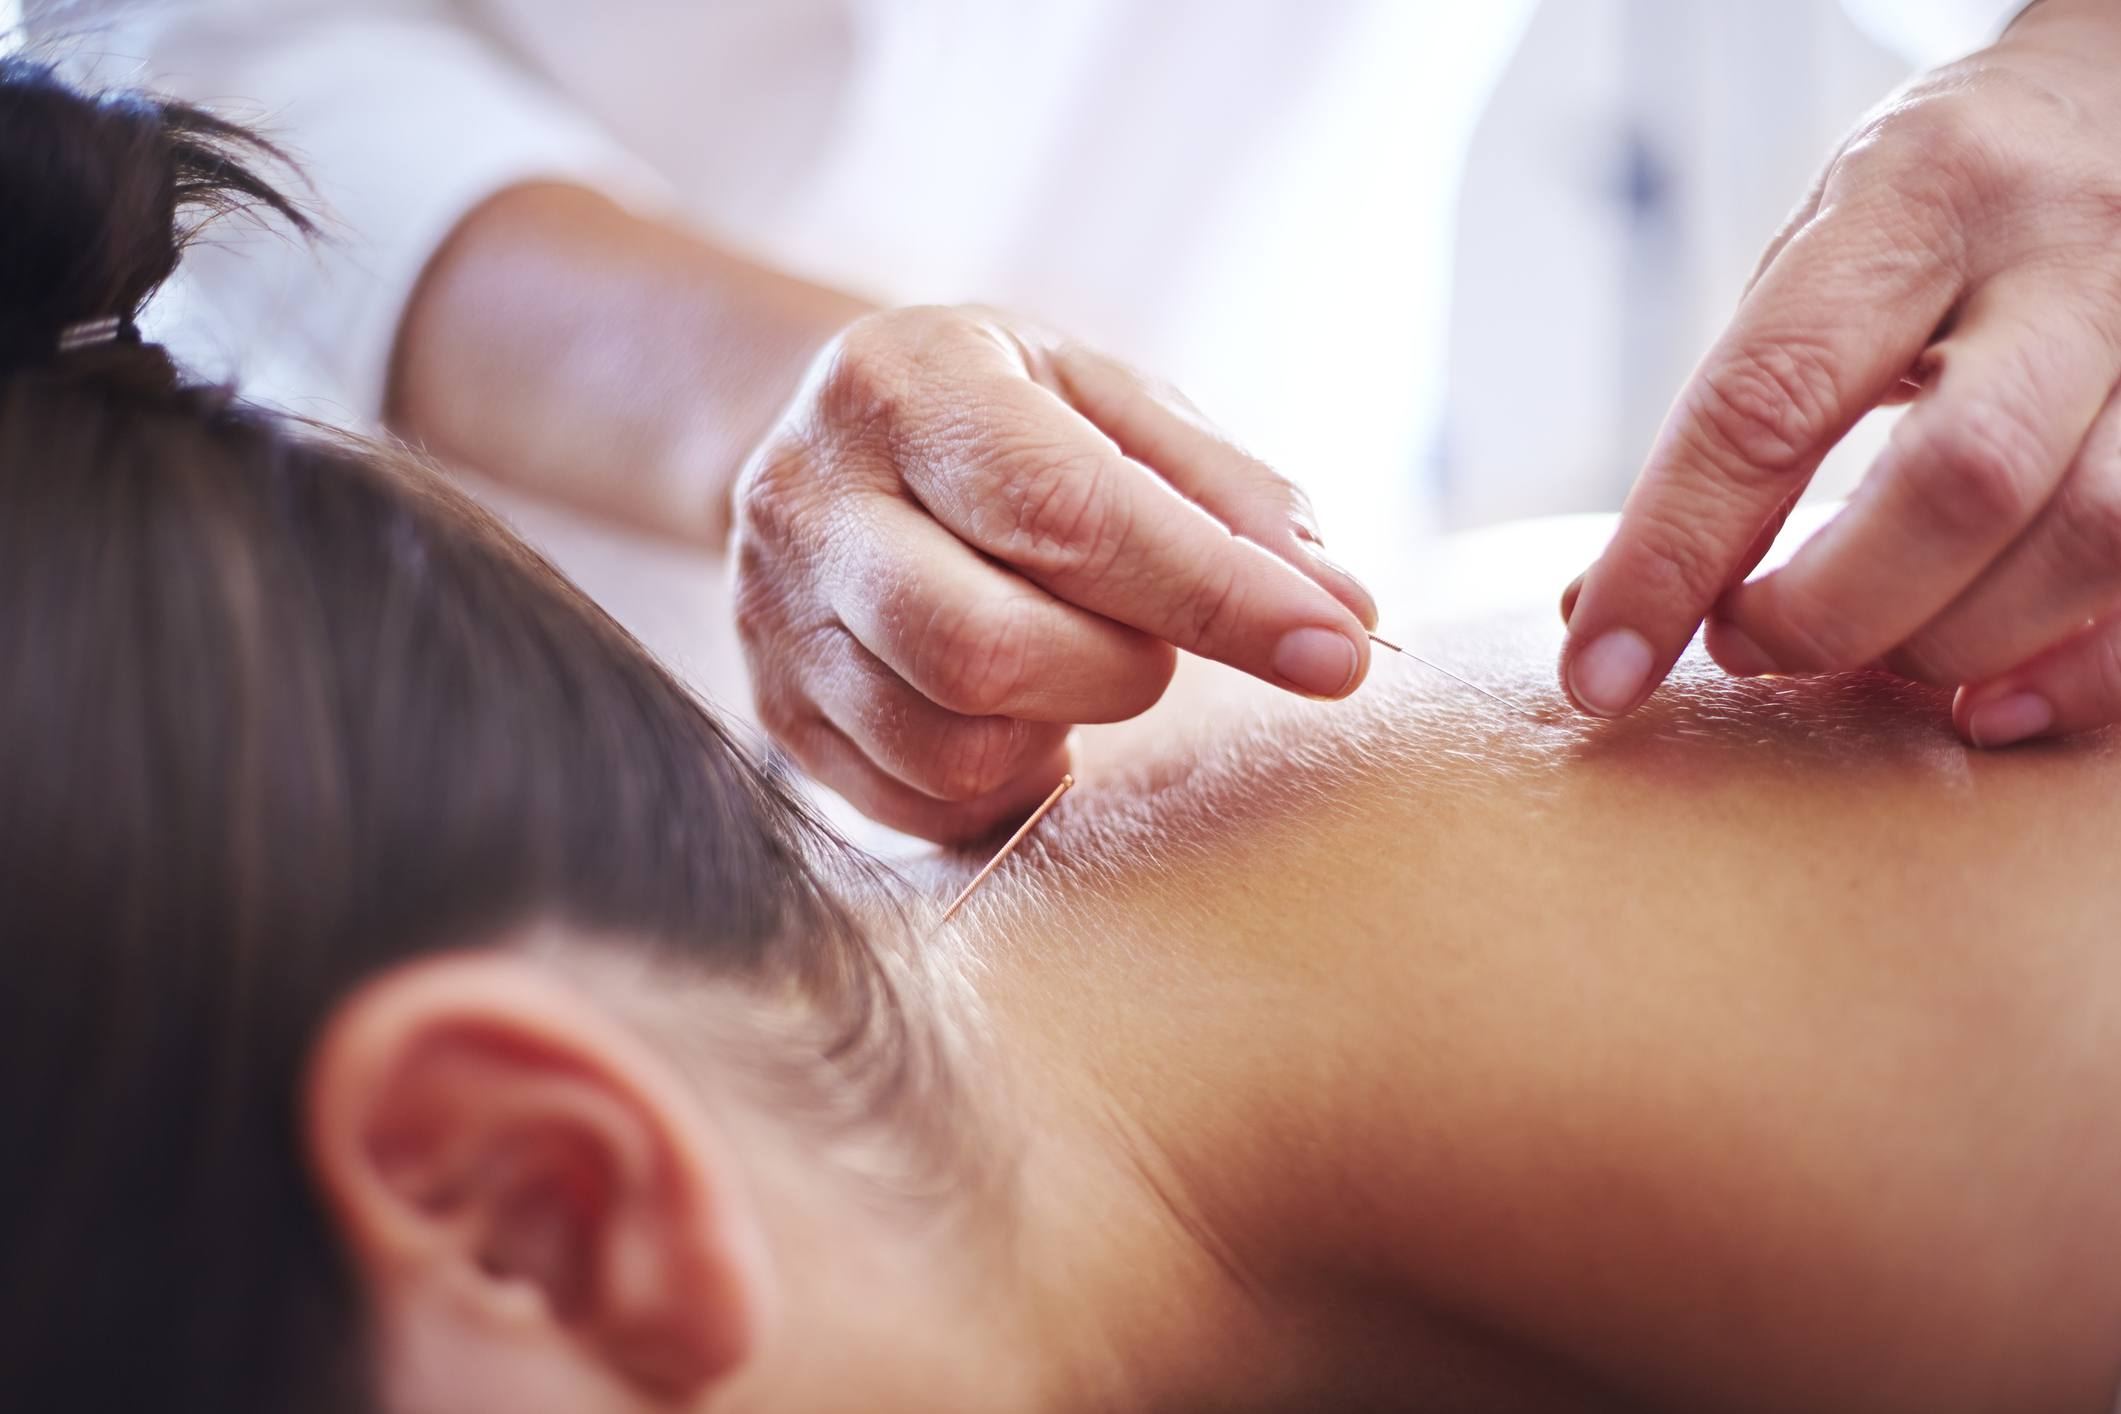 How to Become an Acupuncturist